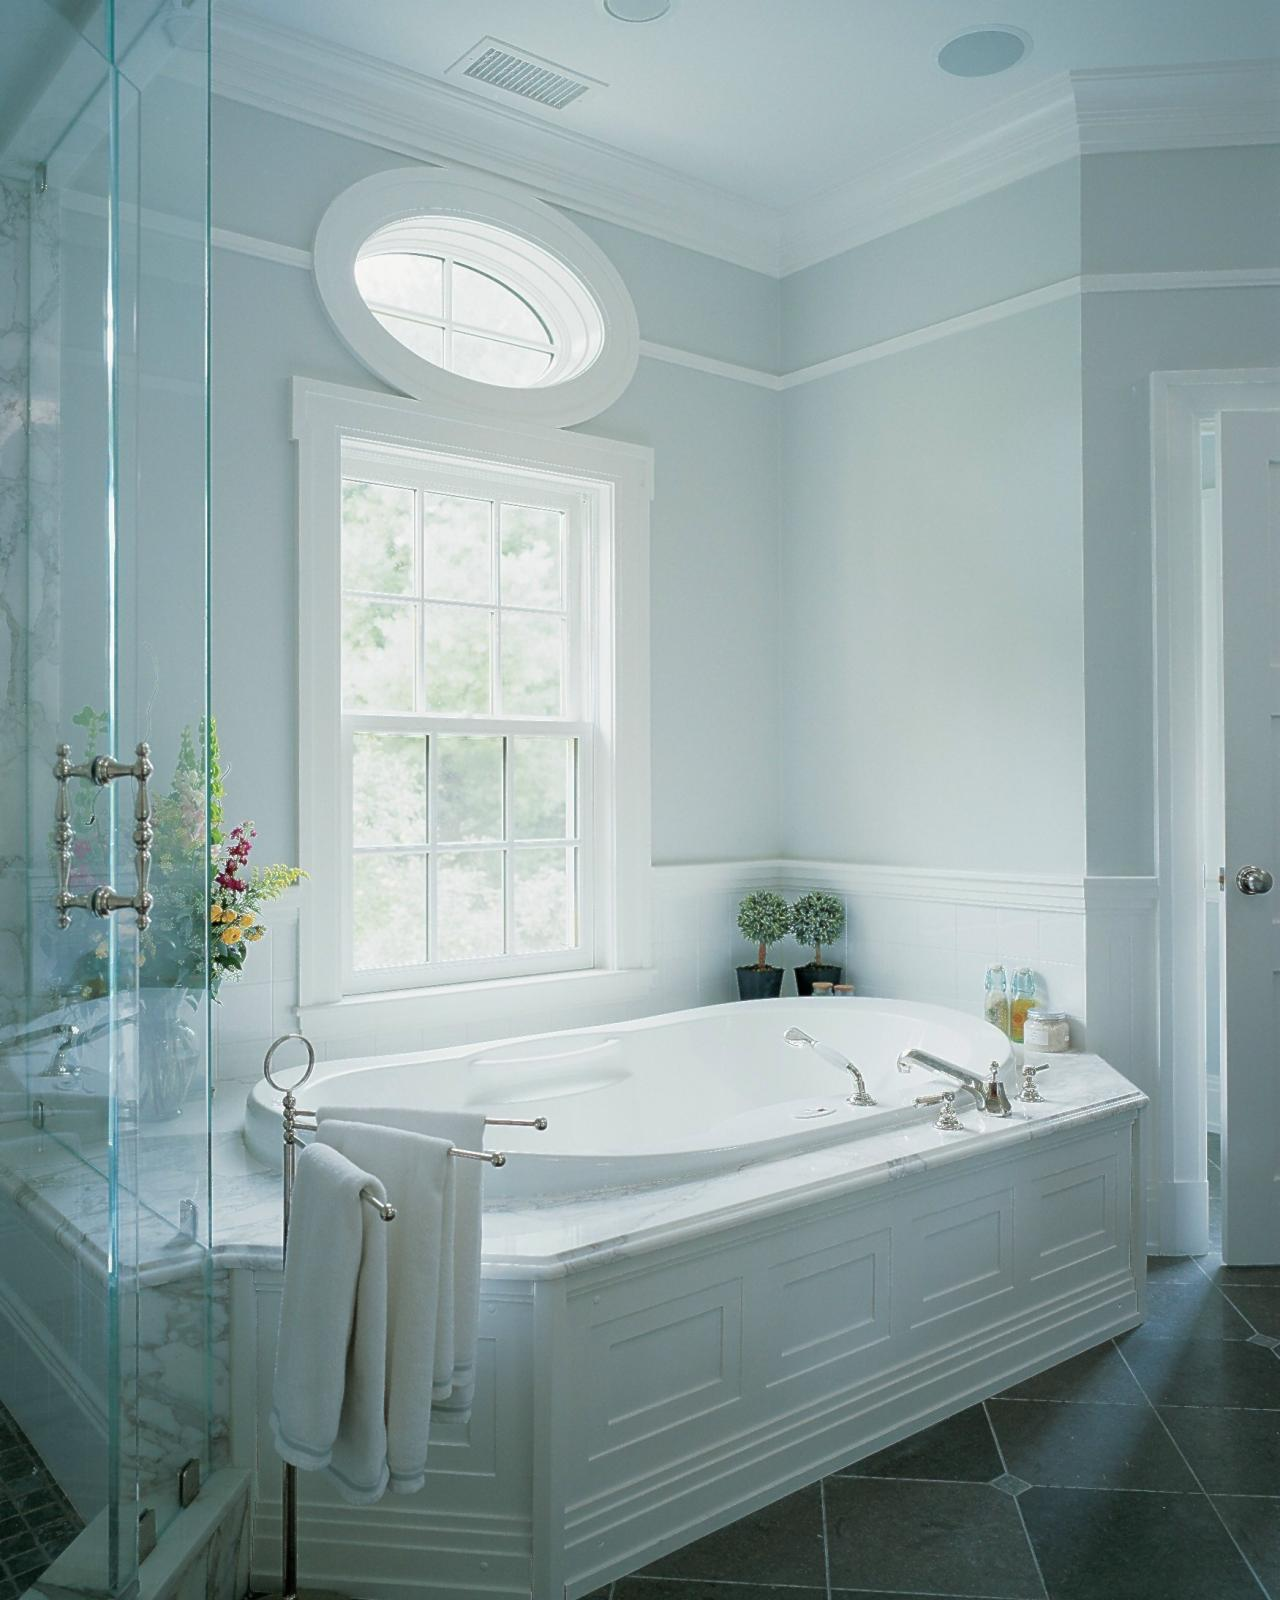 bathtub styles options pictures ideas tips from hgtv